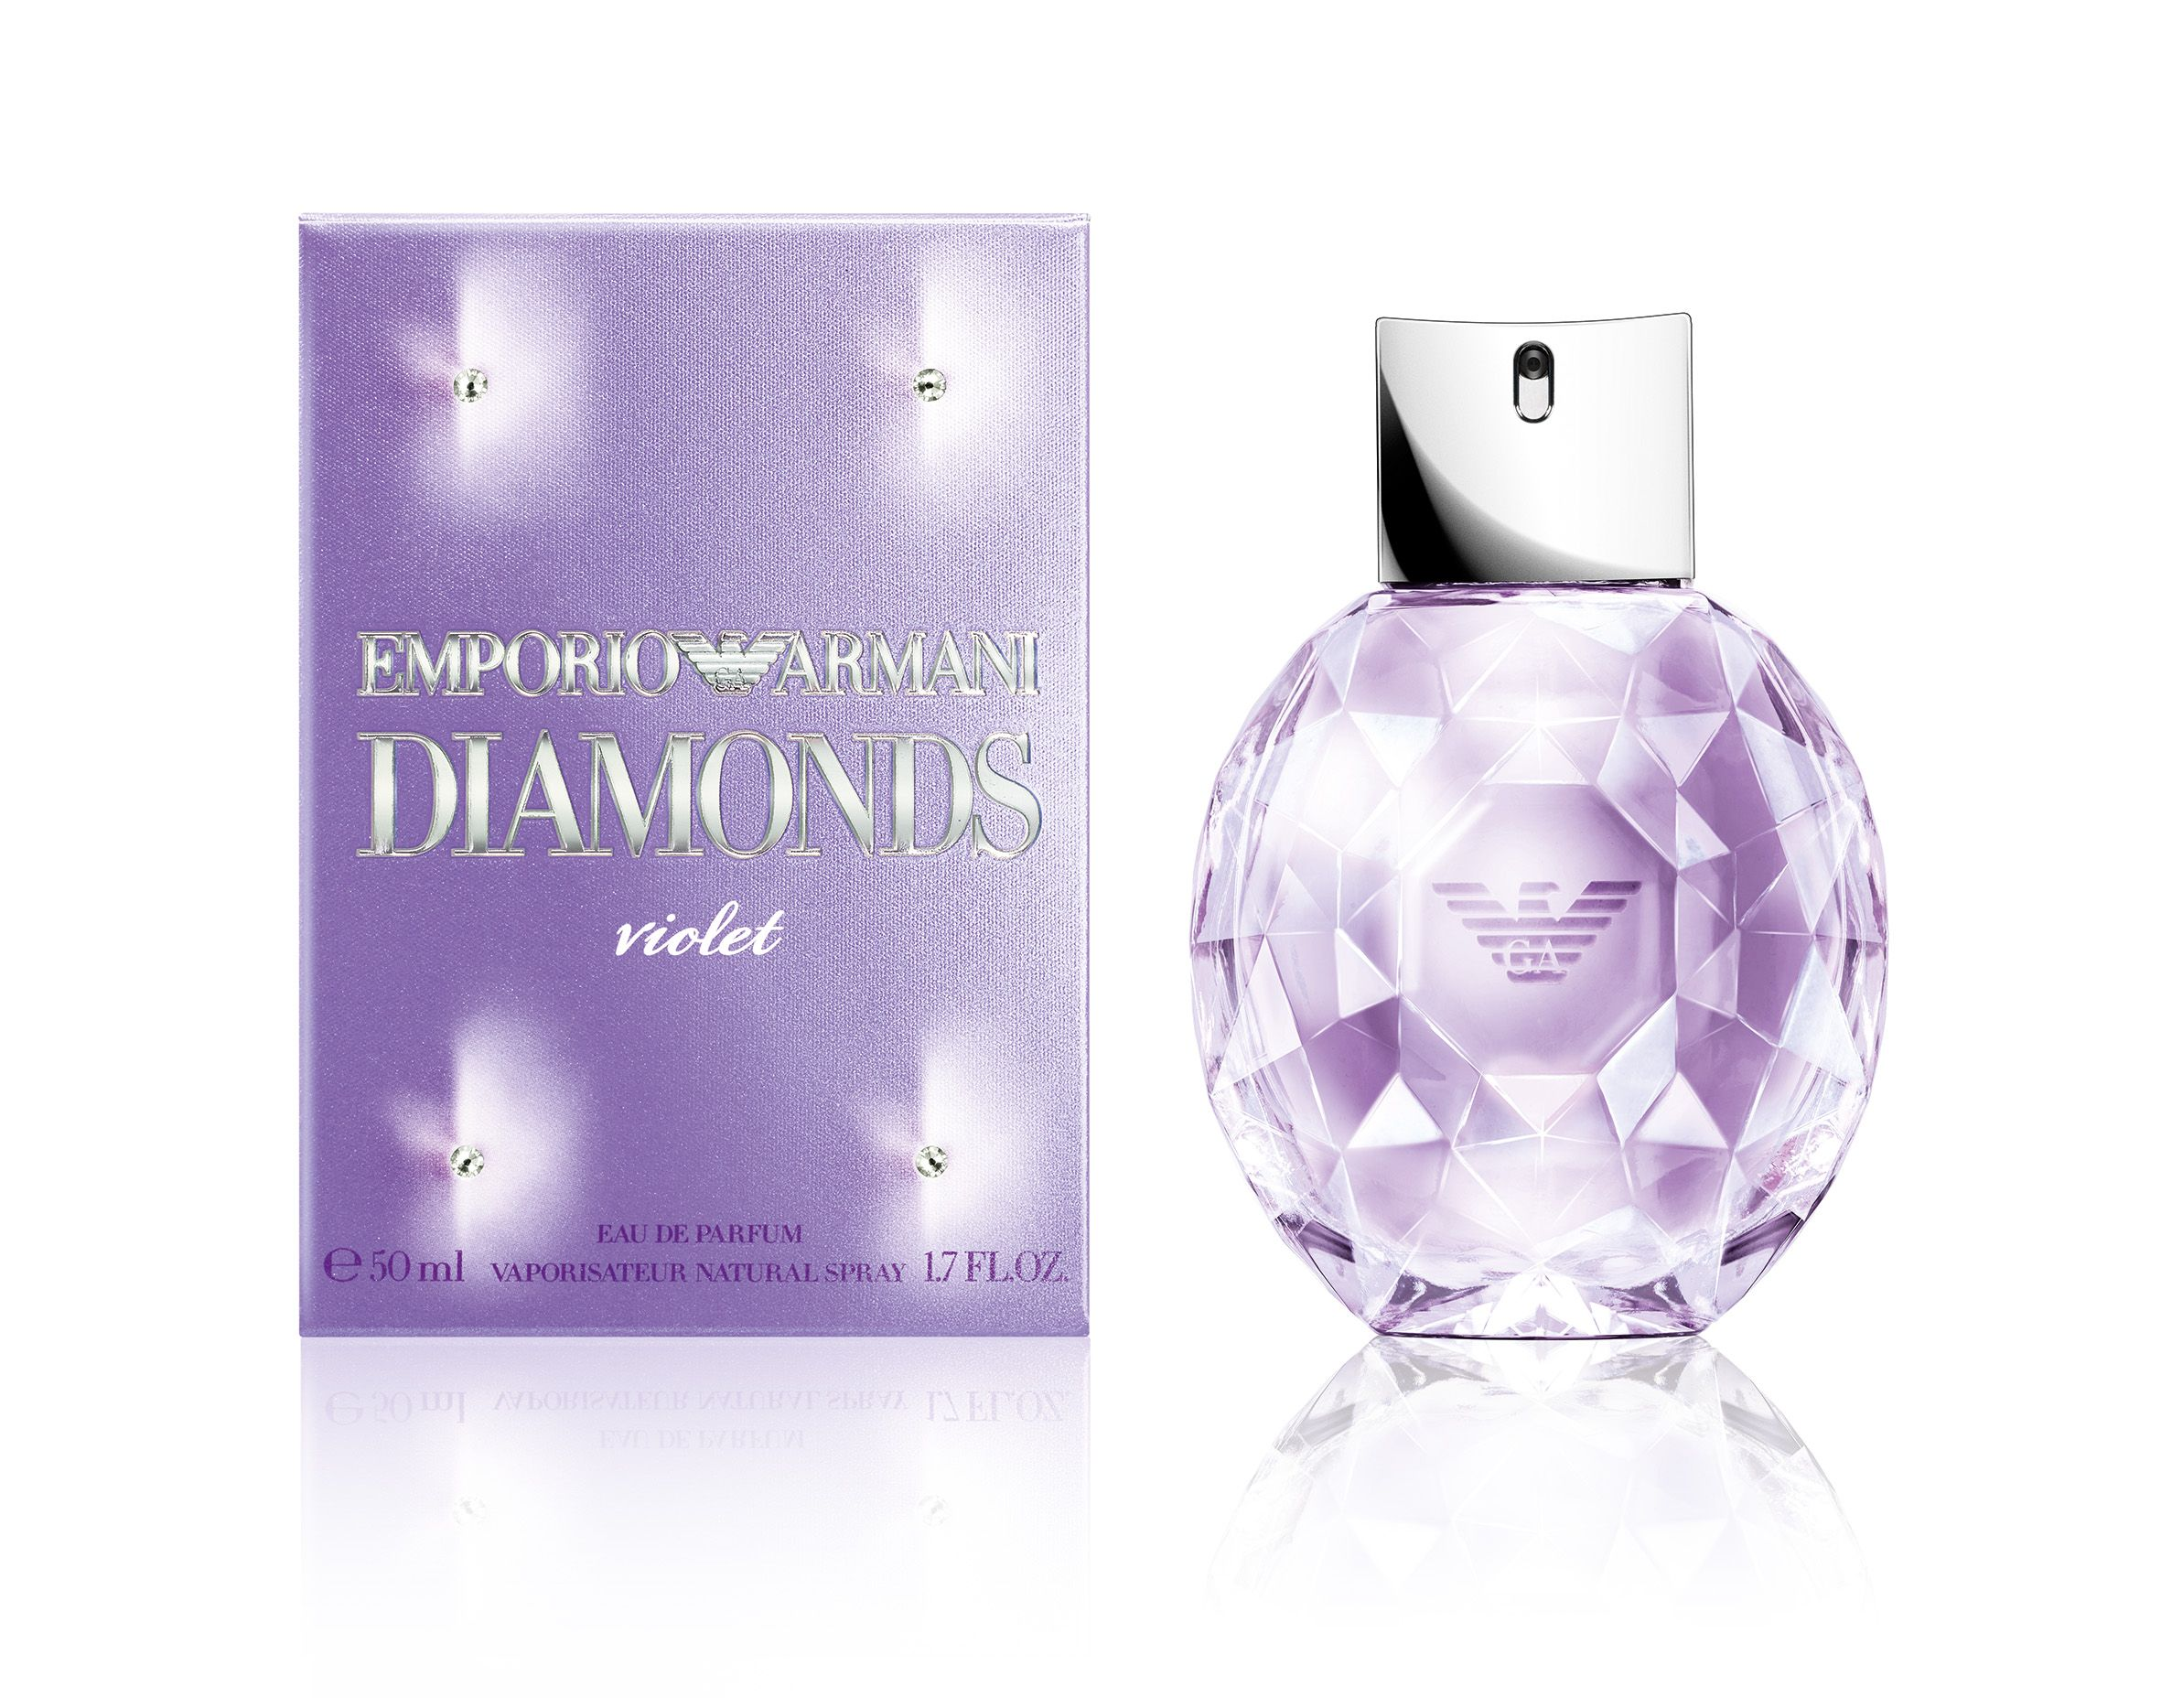 Emporio Armani Parfums Diamonds Violet Eau de Parfum 30ml